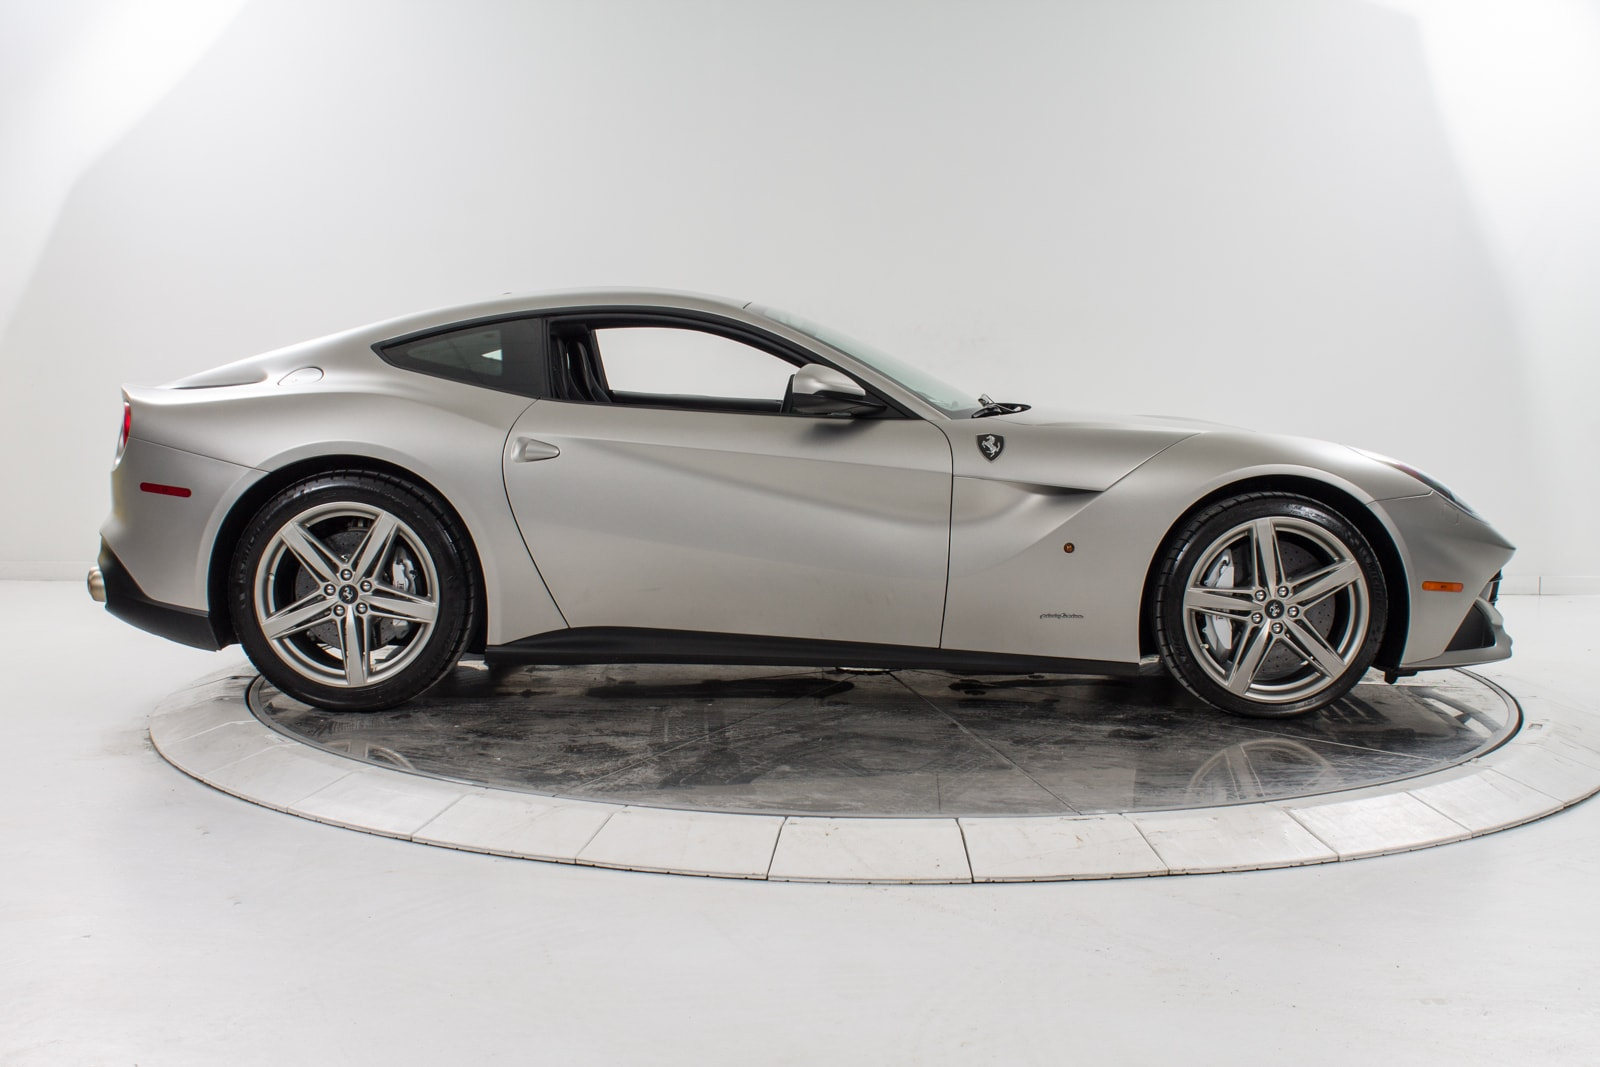 used 2014 ferrari f12 berlinetta for sale plainview near long island ny vin zff74ufaxe0196726. Black Bedroom Furniture Sets. Home Design Ideas